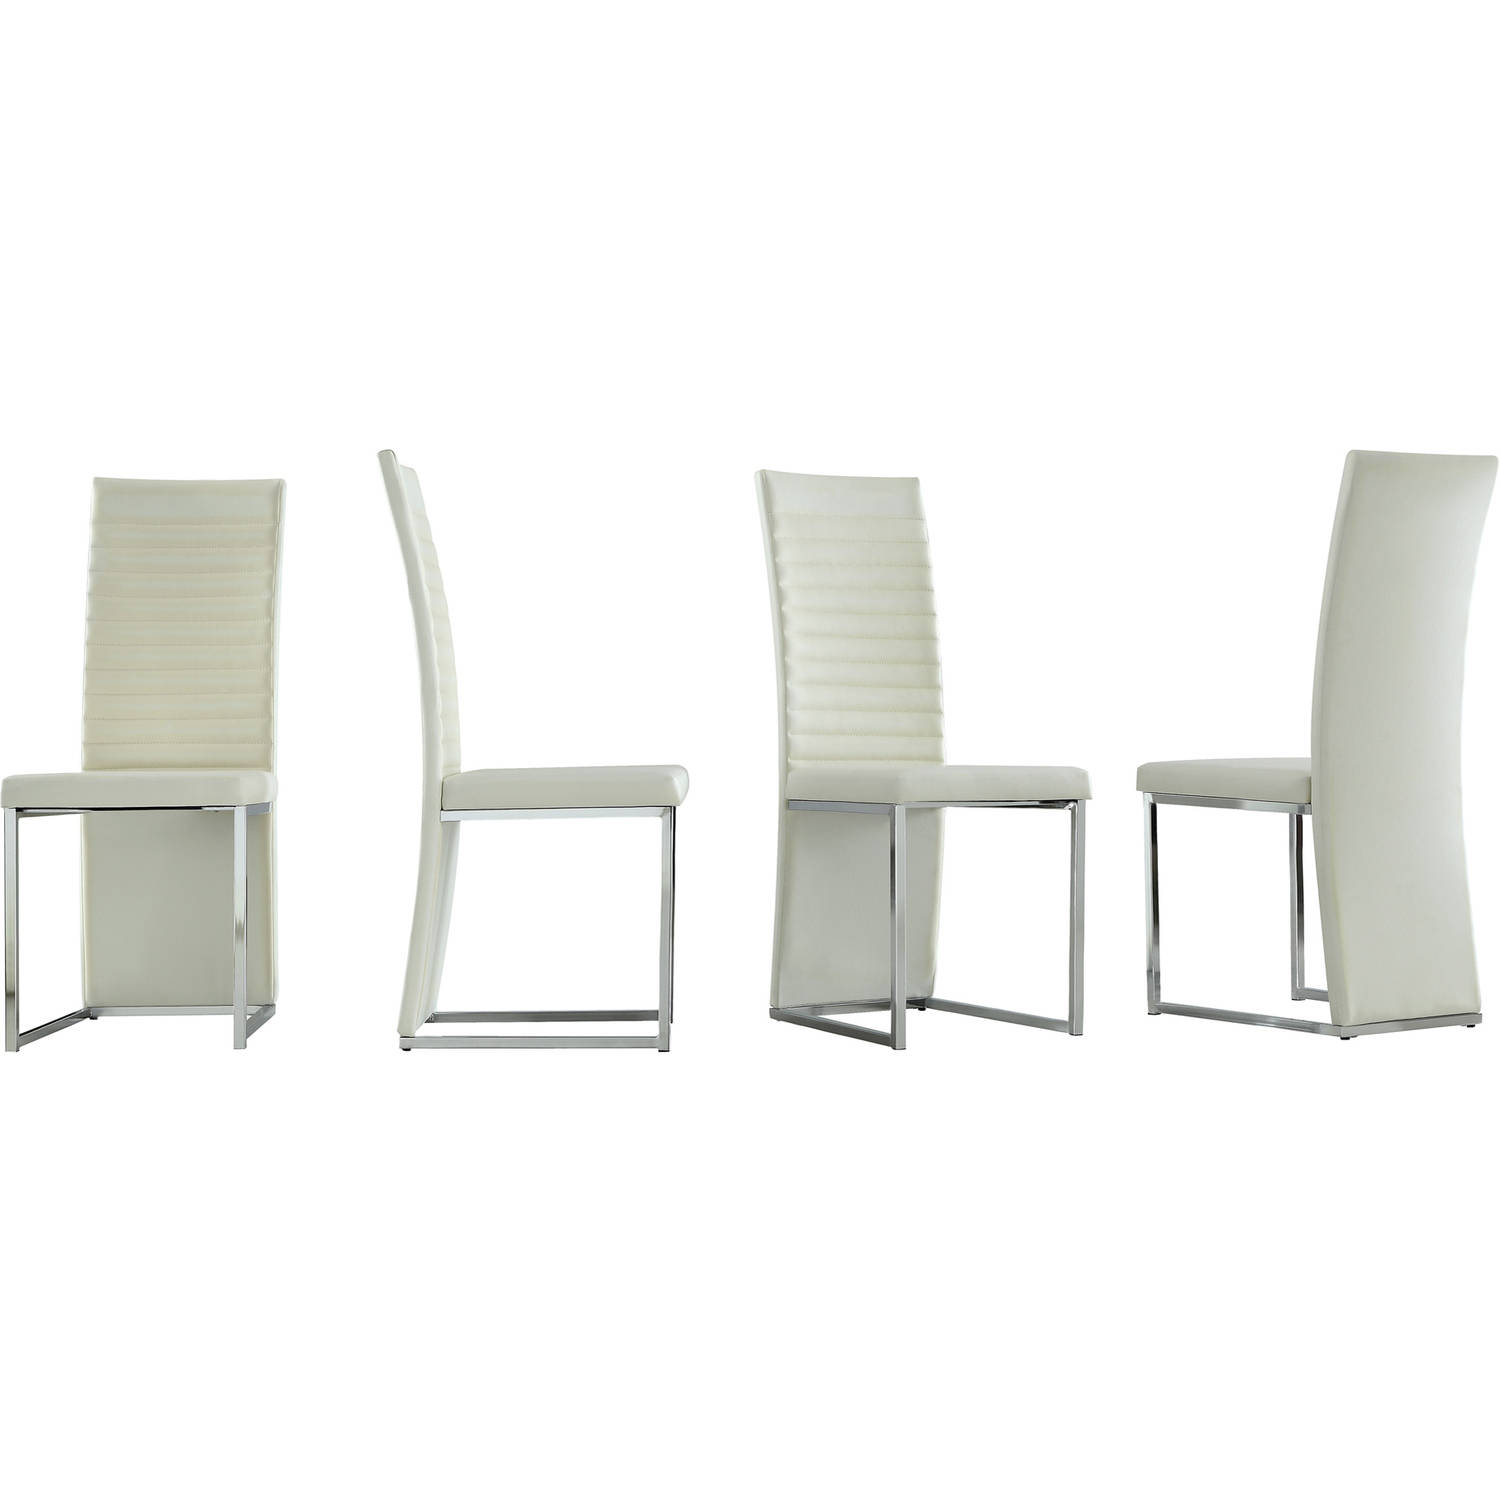 iNSPIRE Q Mackenzie Country Style Two tone Dining Chairs Set of 2